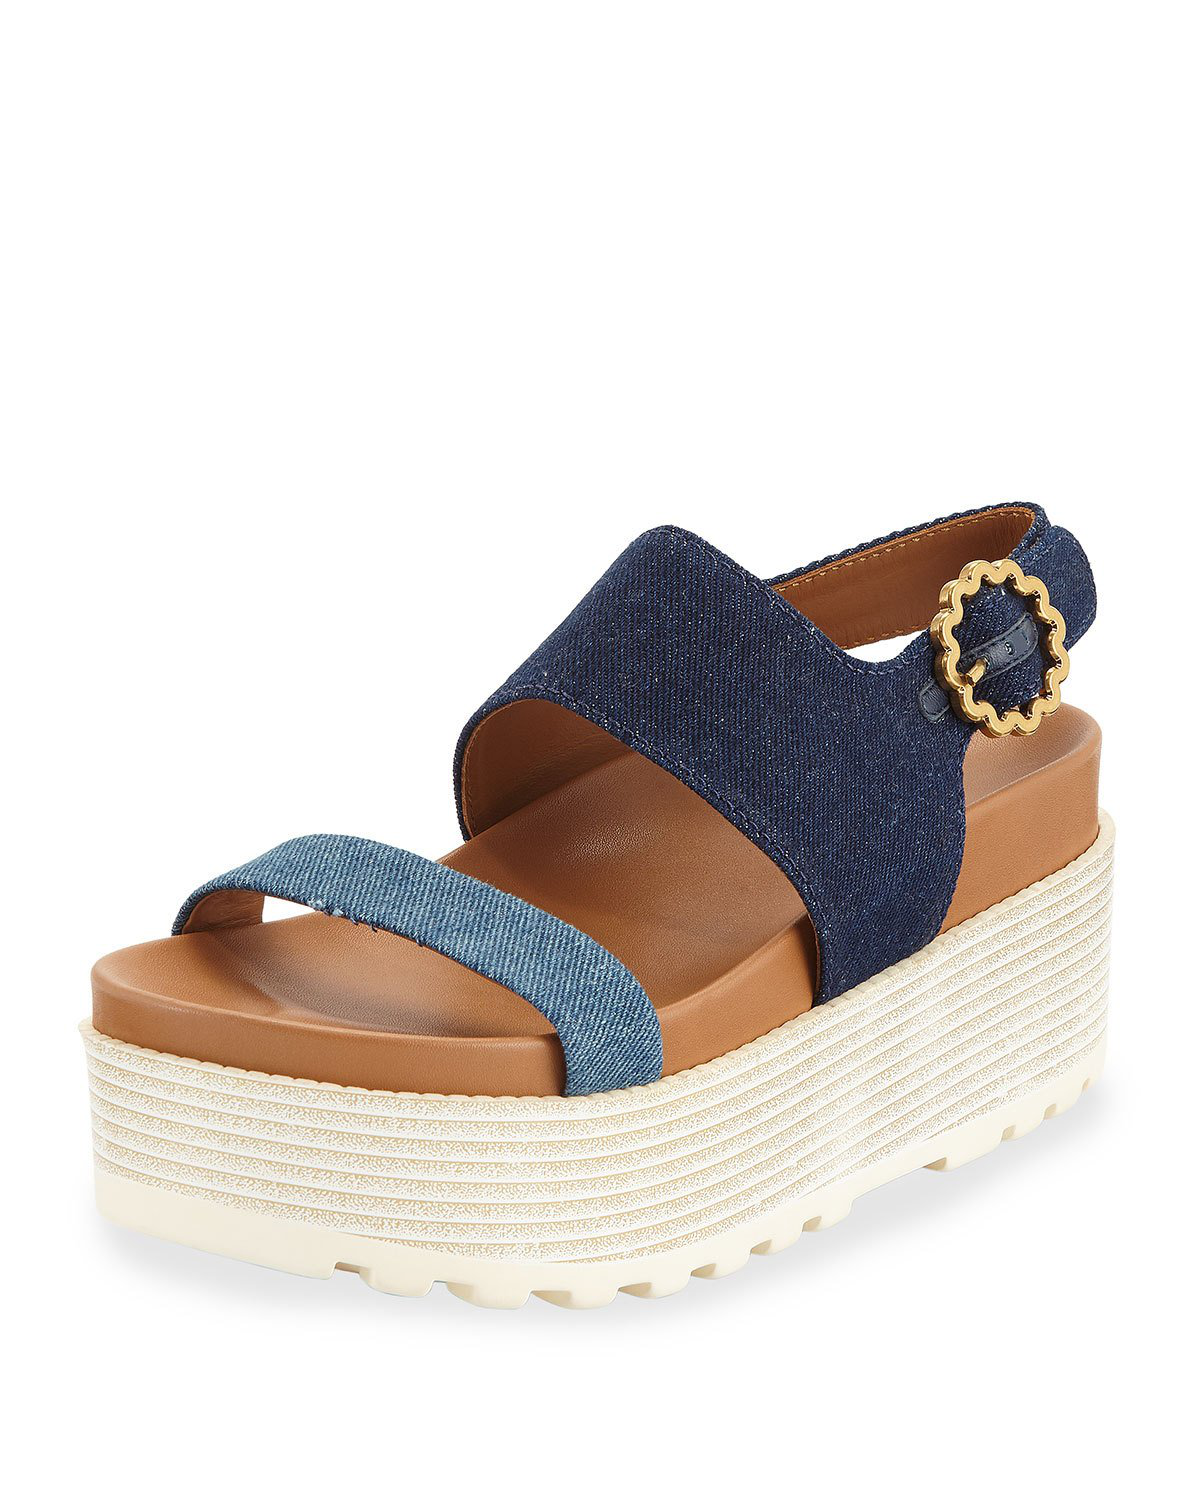 0c61d931790 See By ChloÉ Jenna Denim Flatform Sandals In Denim Navy